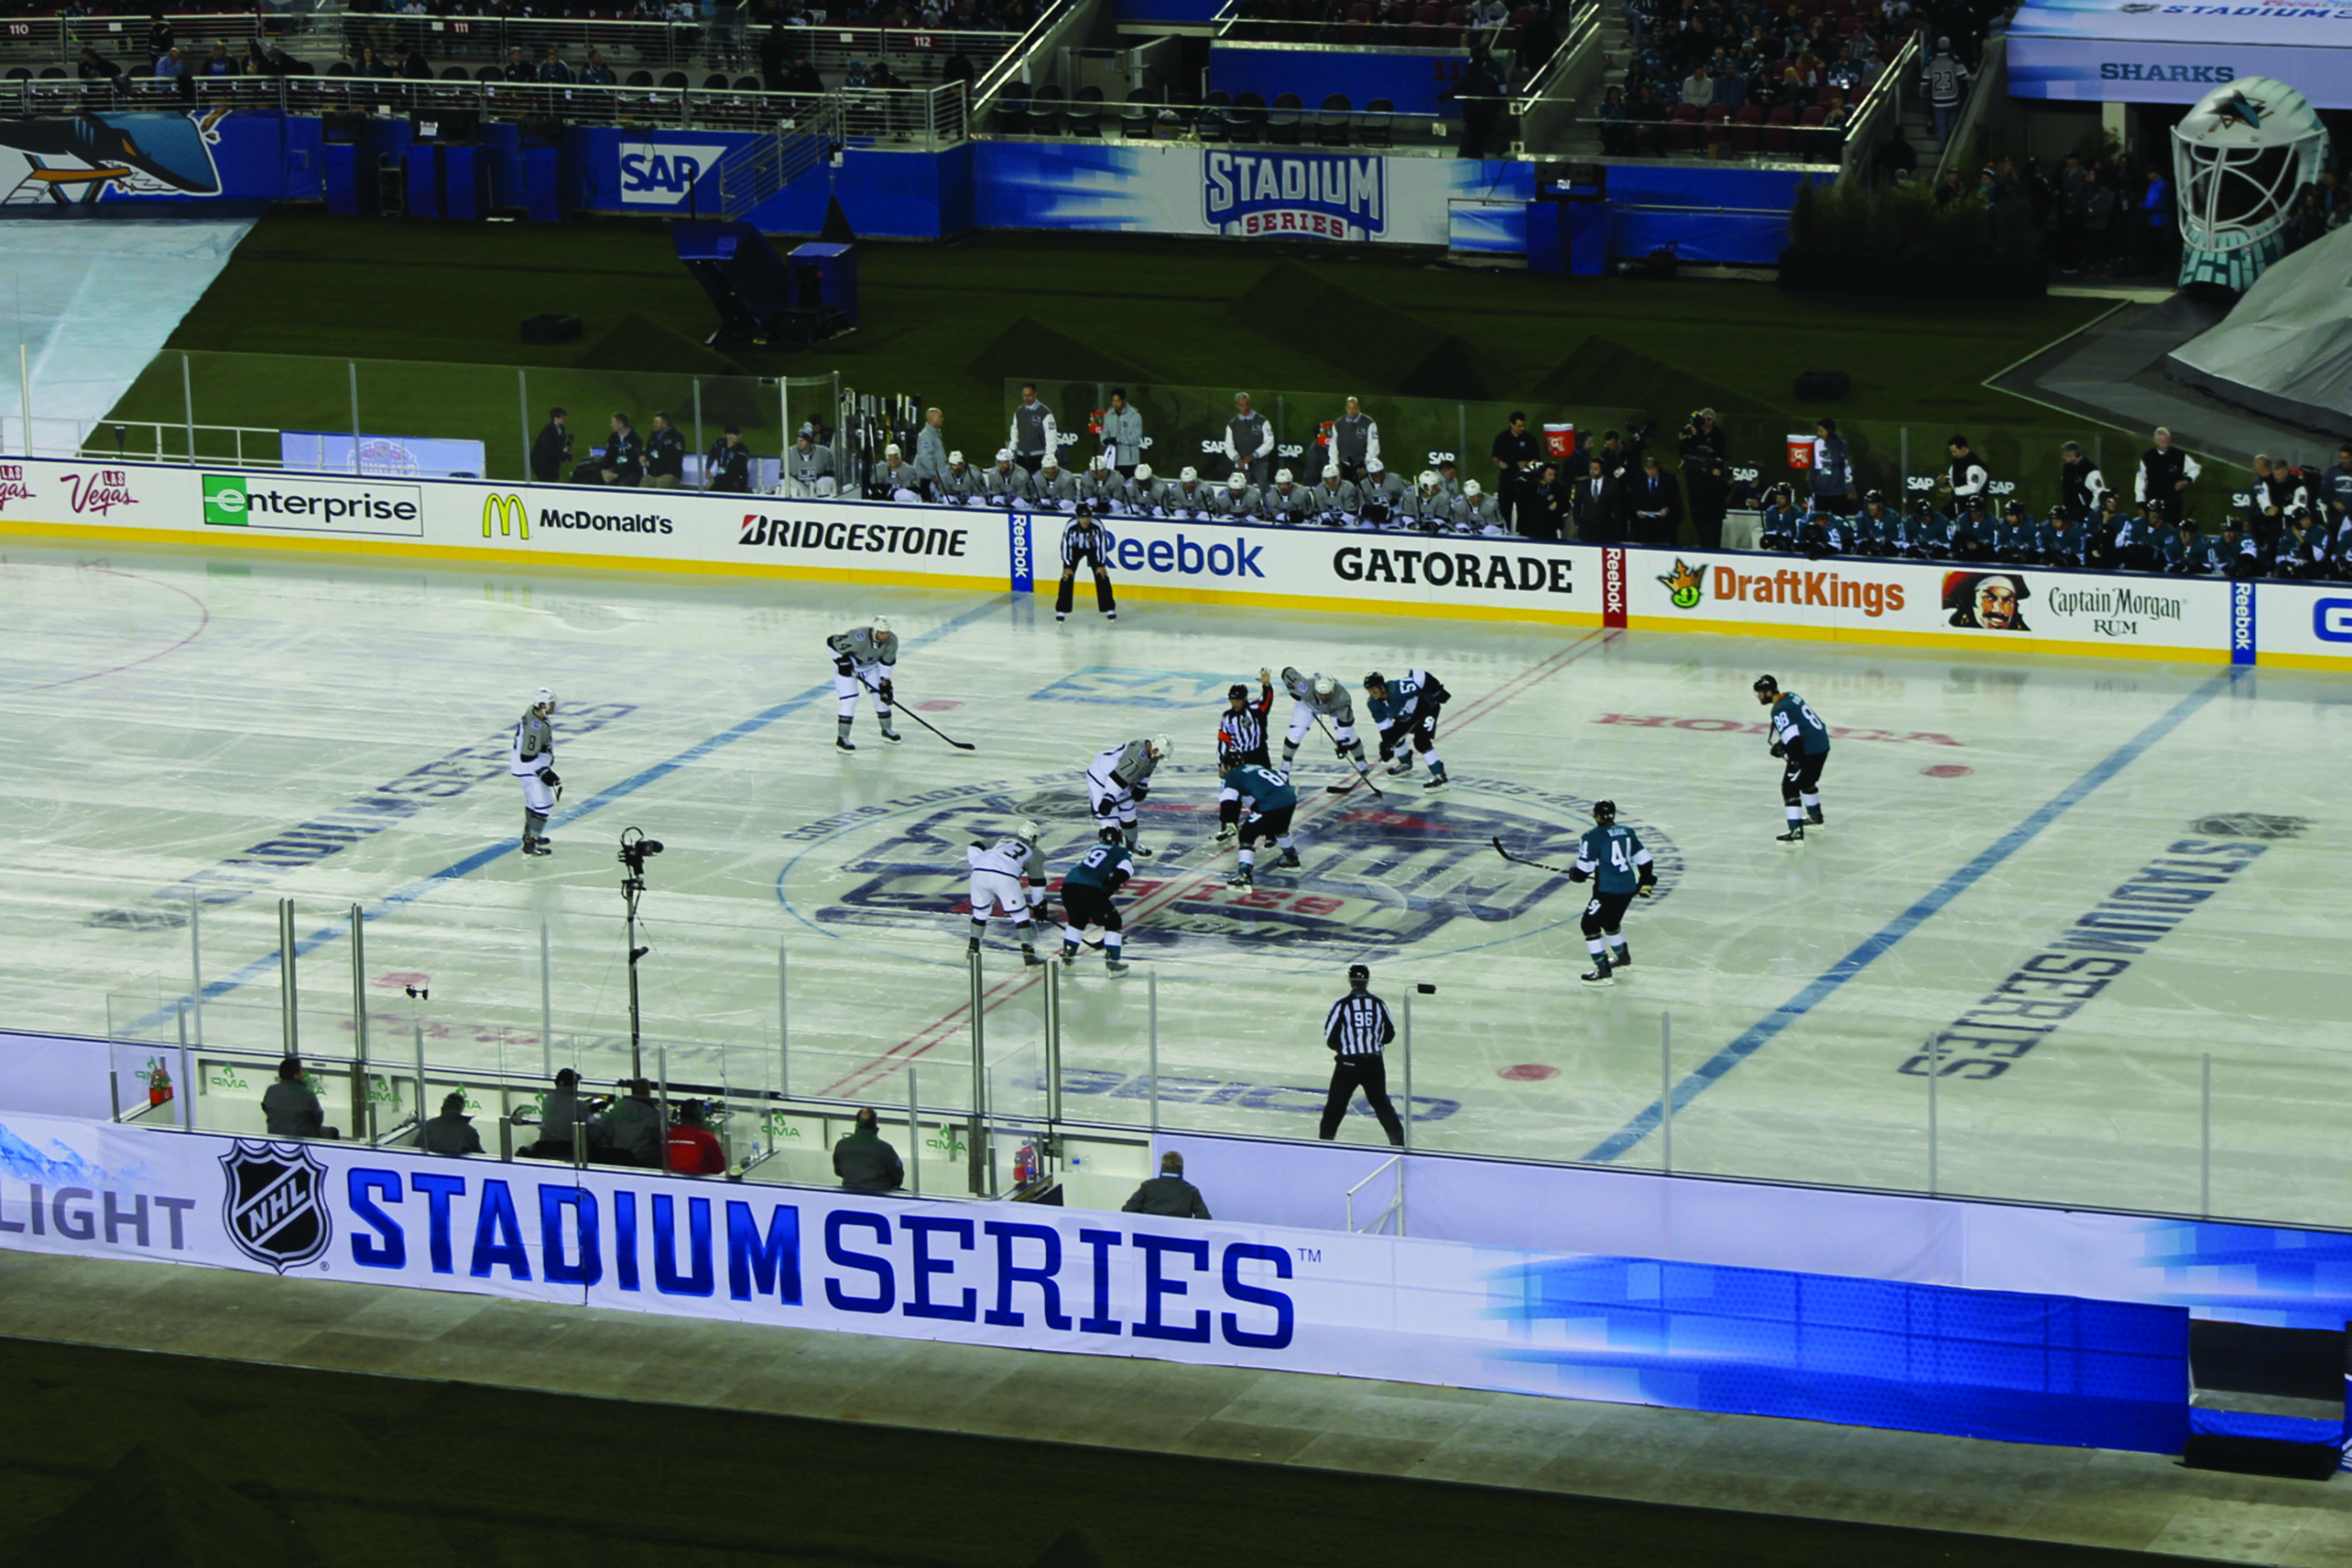 Sharks vs. Kings outdoors at Levi